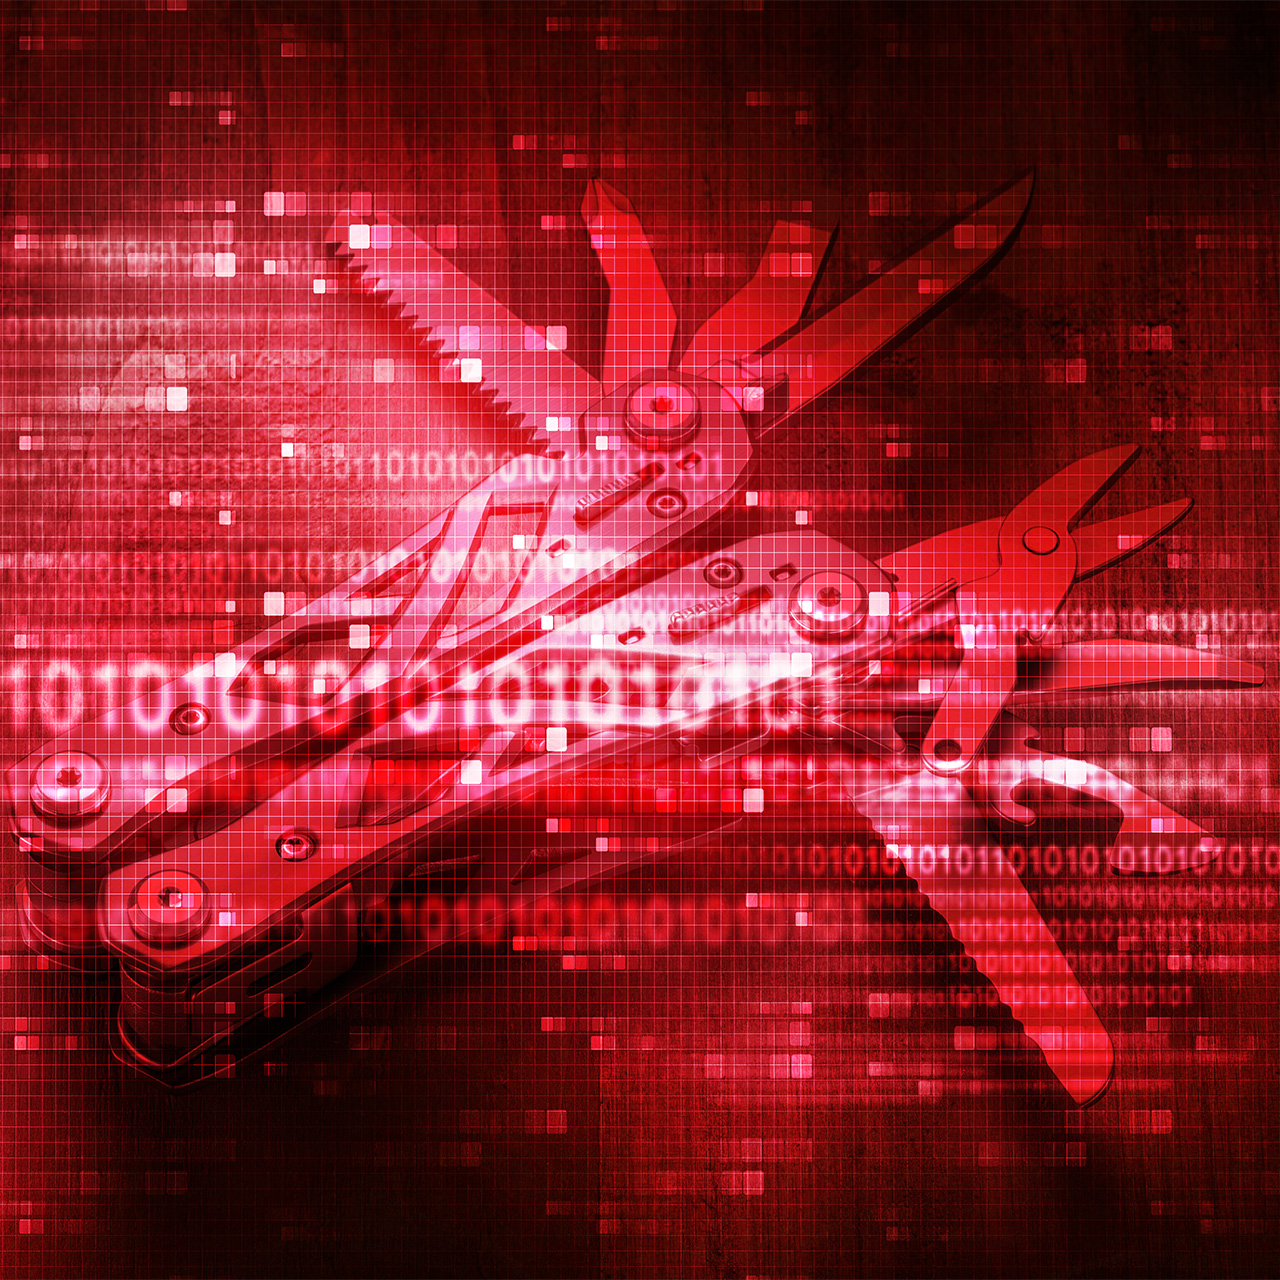 Cerber ransomware delivers a secondary payload